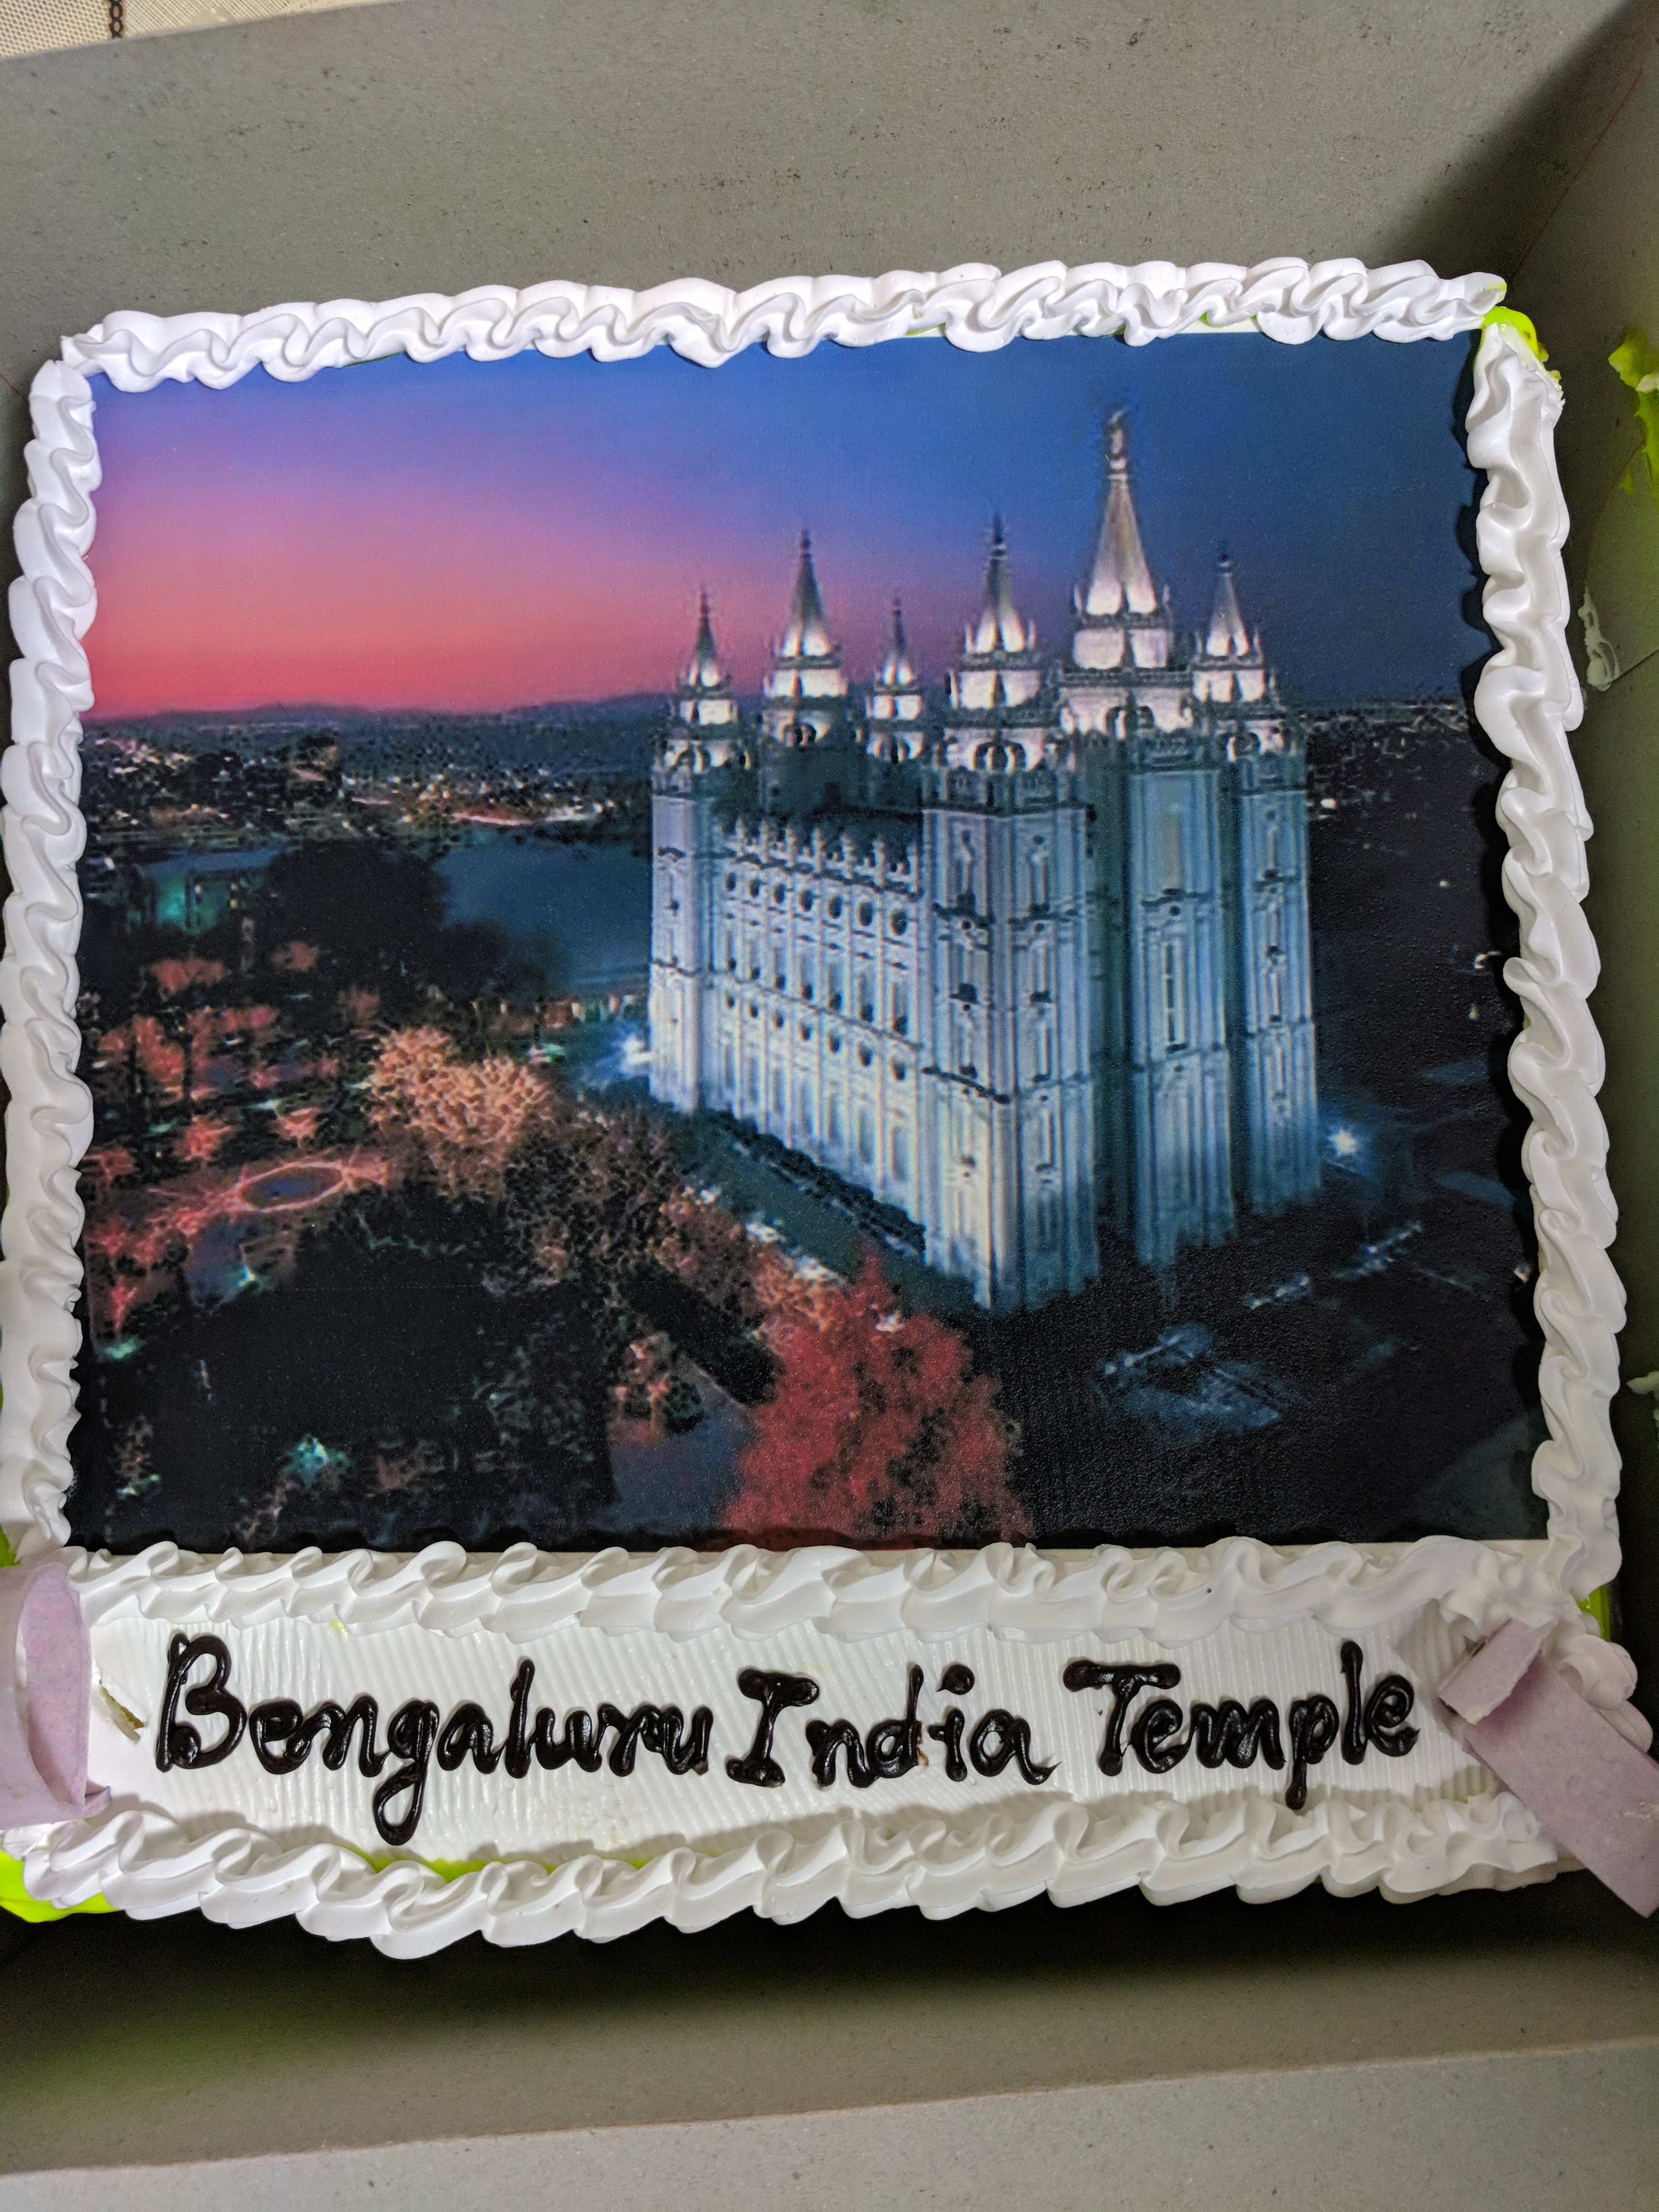 President Bob Anthony, a counselor in the stake presidency in Bengaluru, purchased two cakes with pictures of the temple to celebrate the announcement of a temple in India.